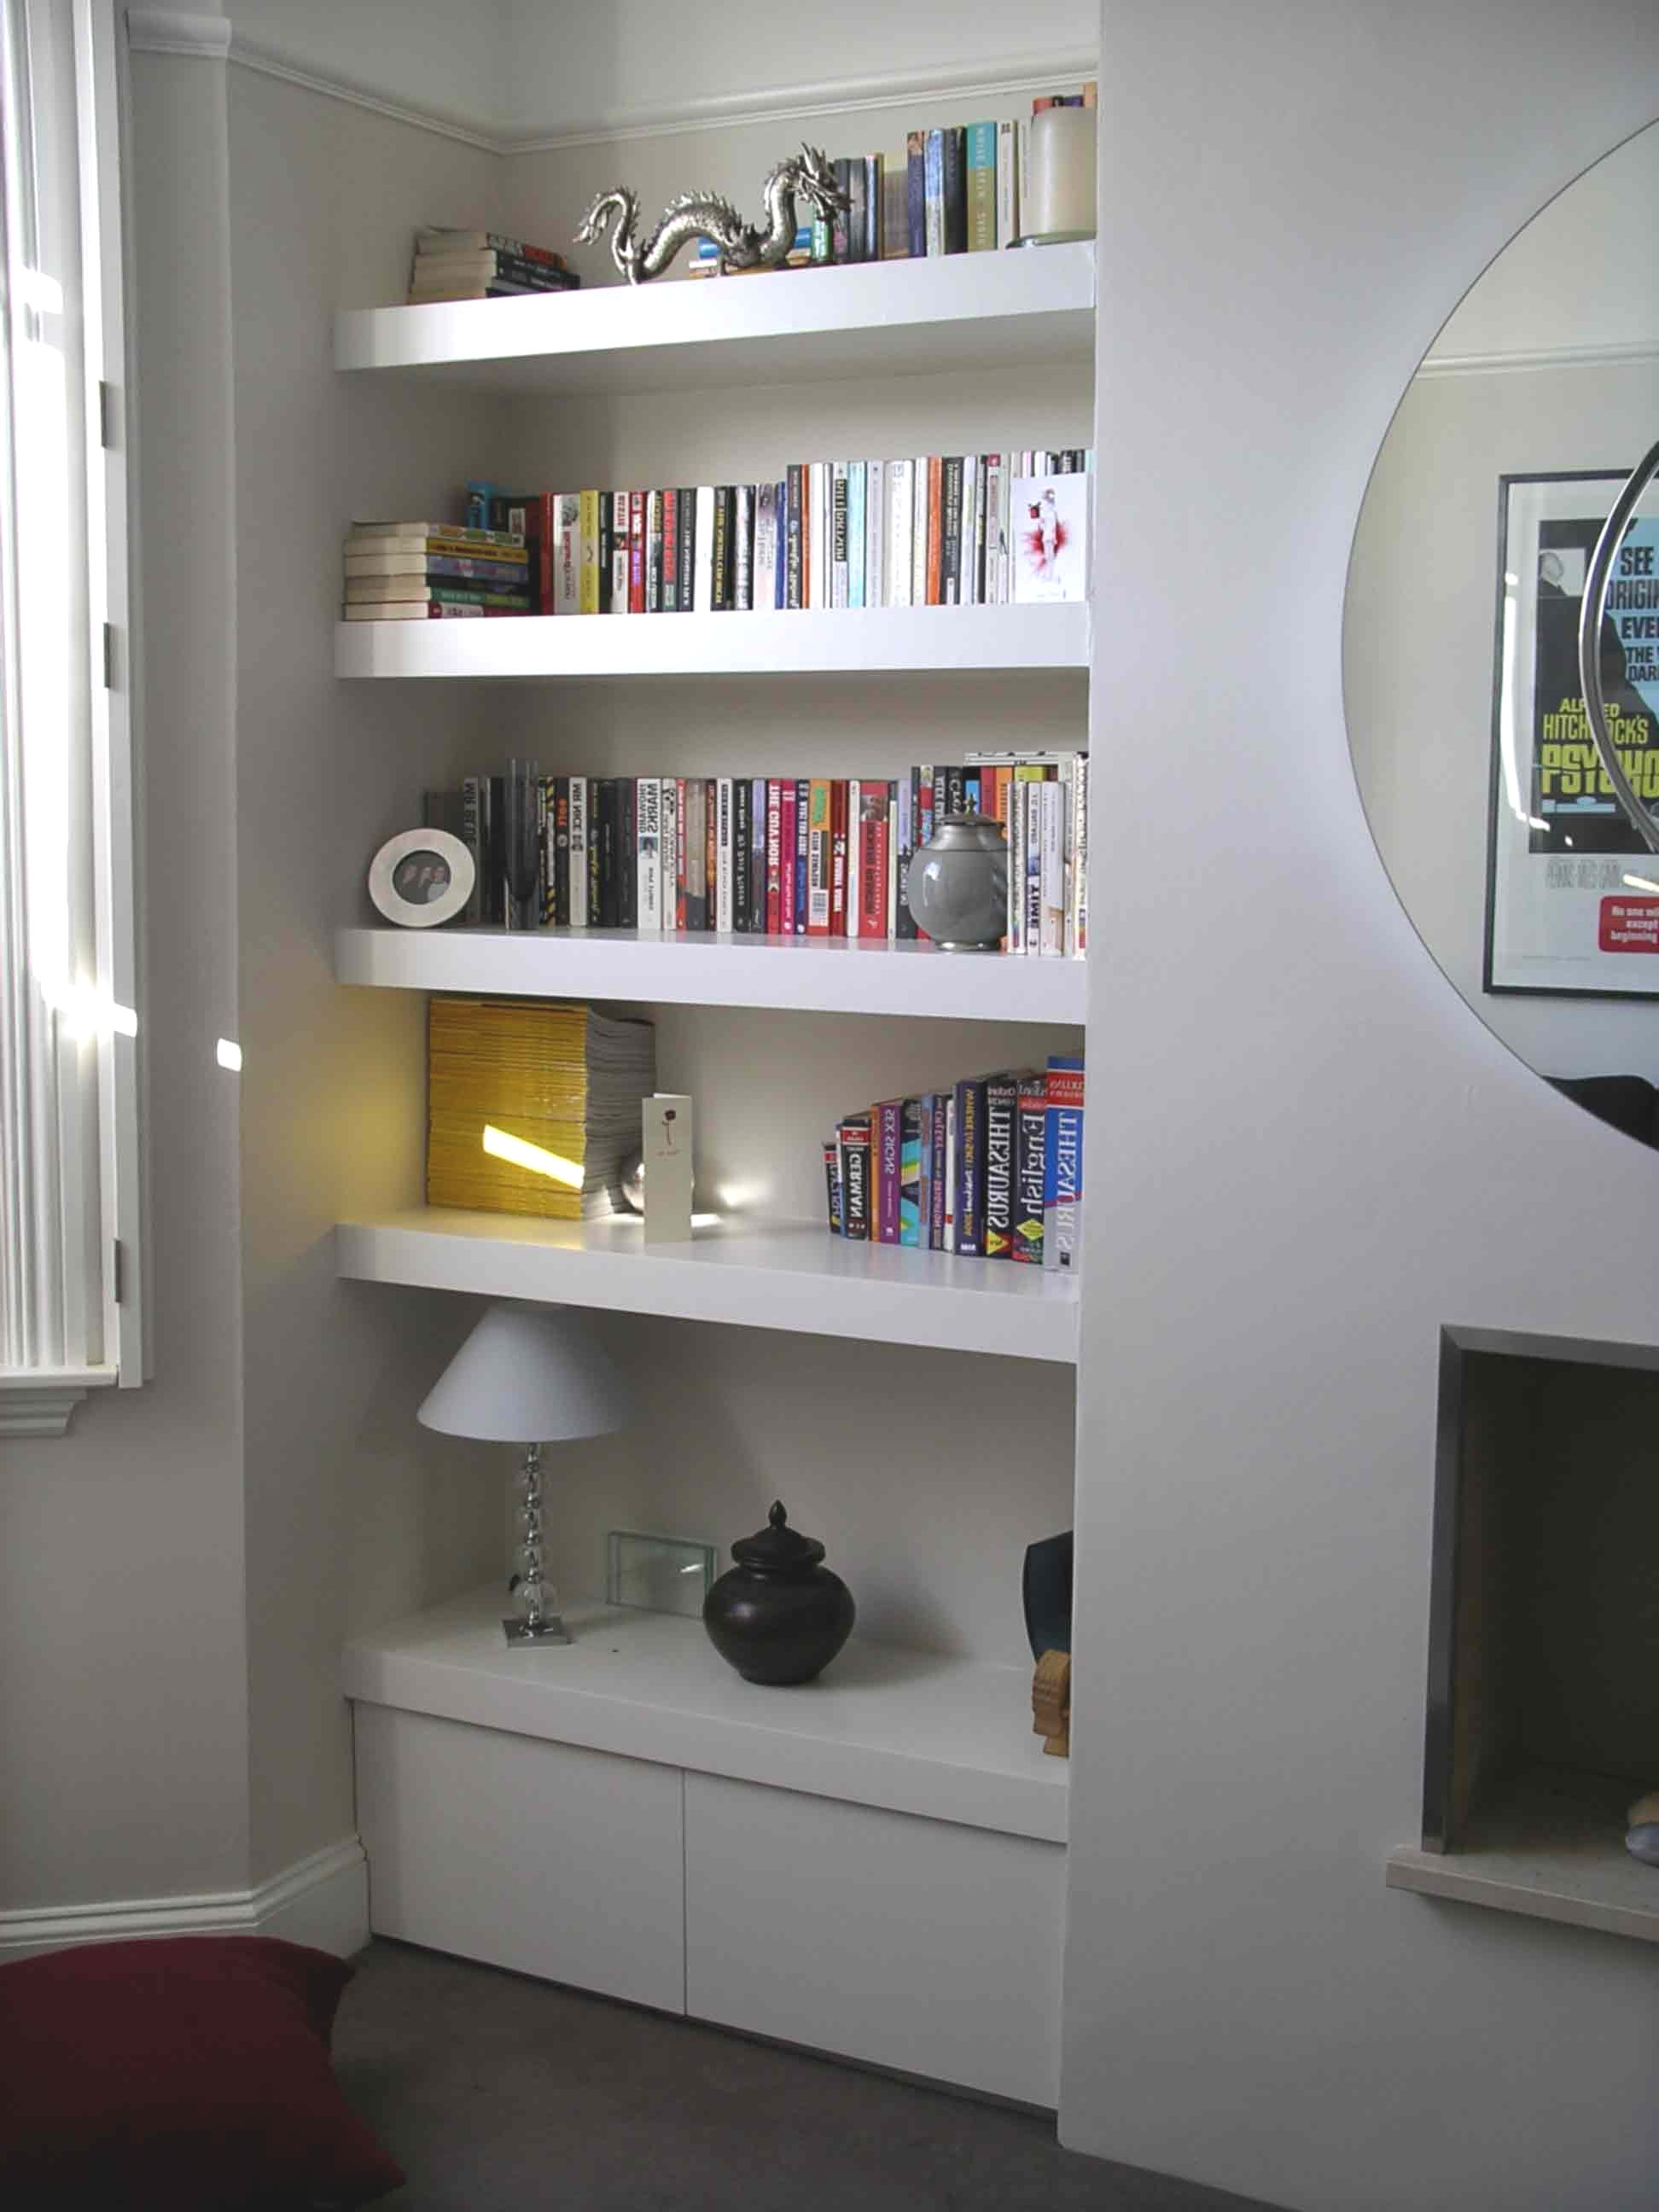 Alcove Bookcases In Most Up To Date Low Bookcases And Shelves, Floating Shelves Alcove Wall Alcove (View 3 of 15)